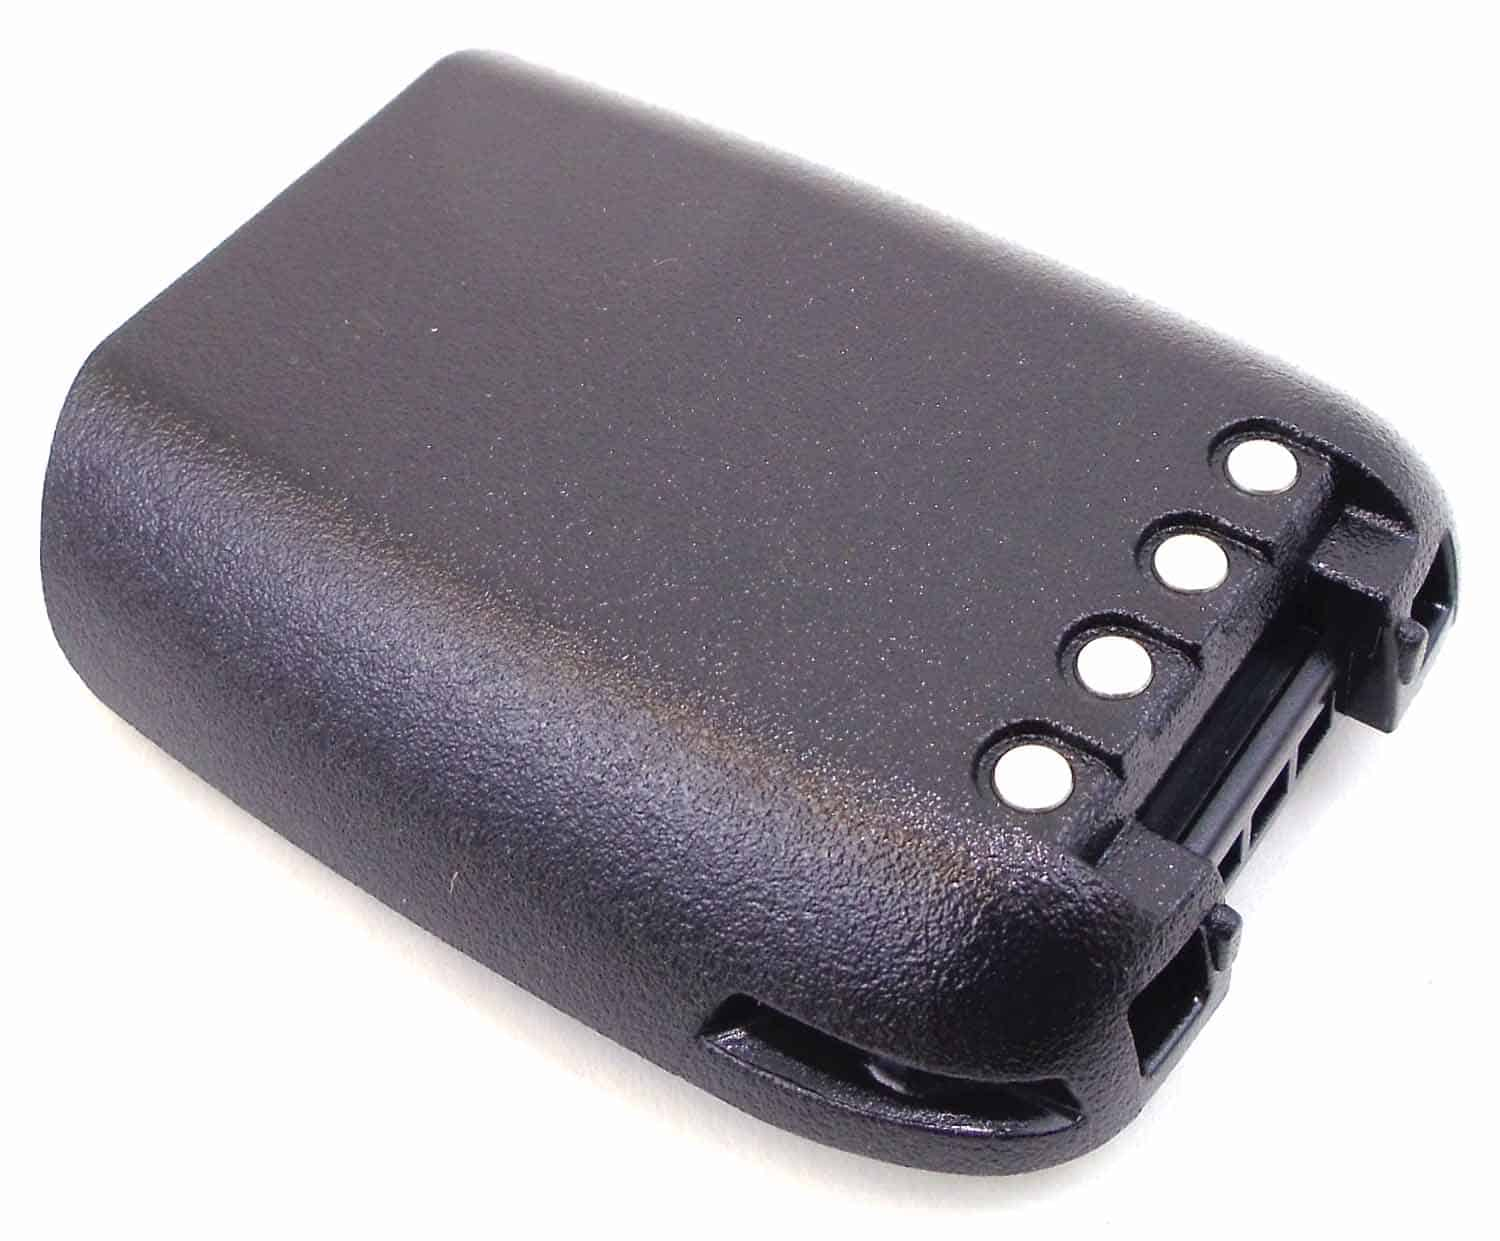 BBTG0913001 - Uniden Replacement Battery For MHS126 Radio